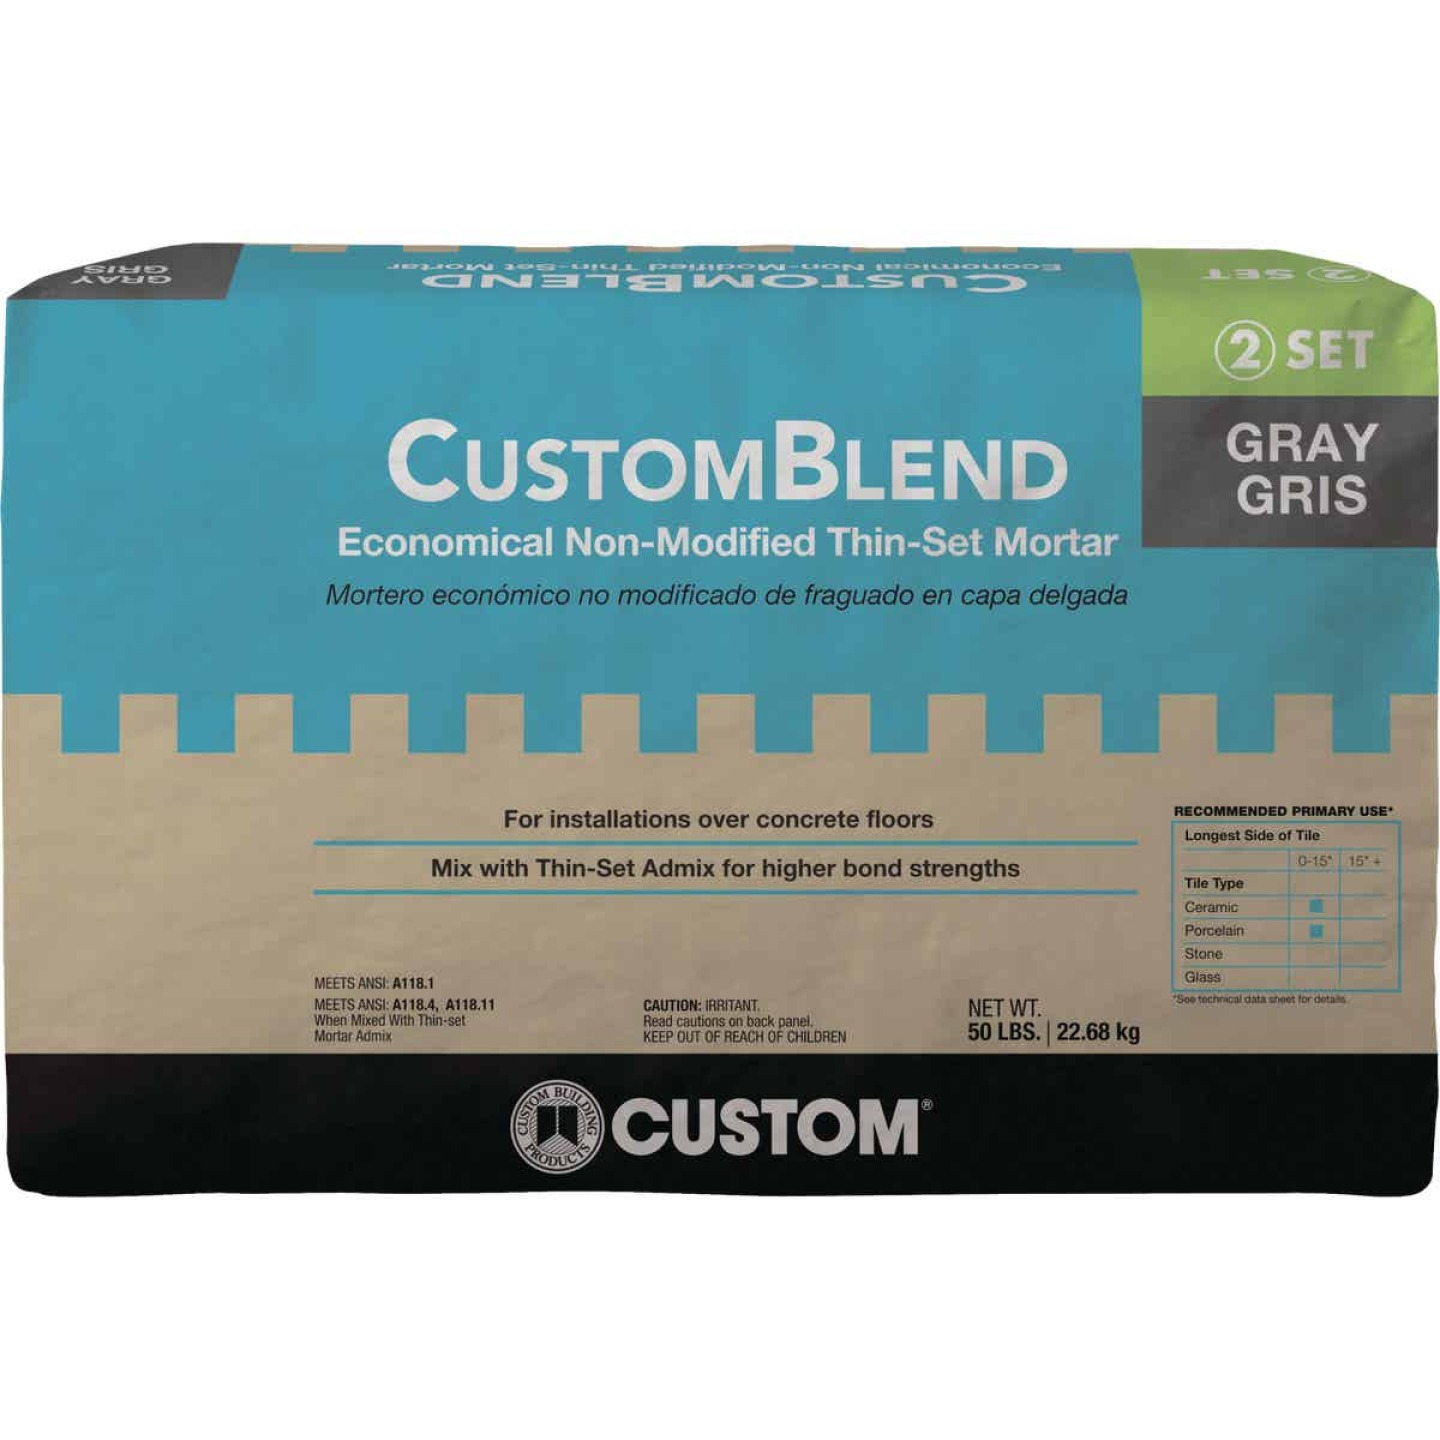 Custom-Blend 50 Lb. Gray Mortar Mix Image 1